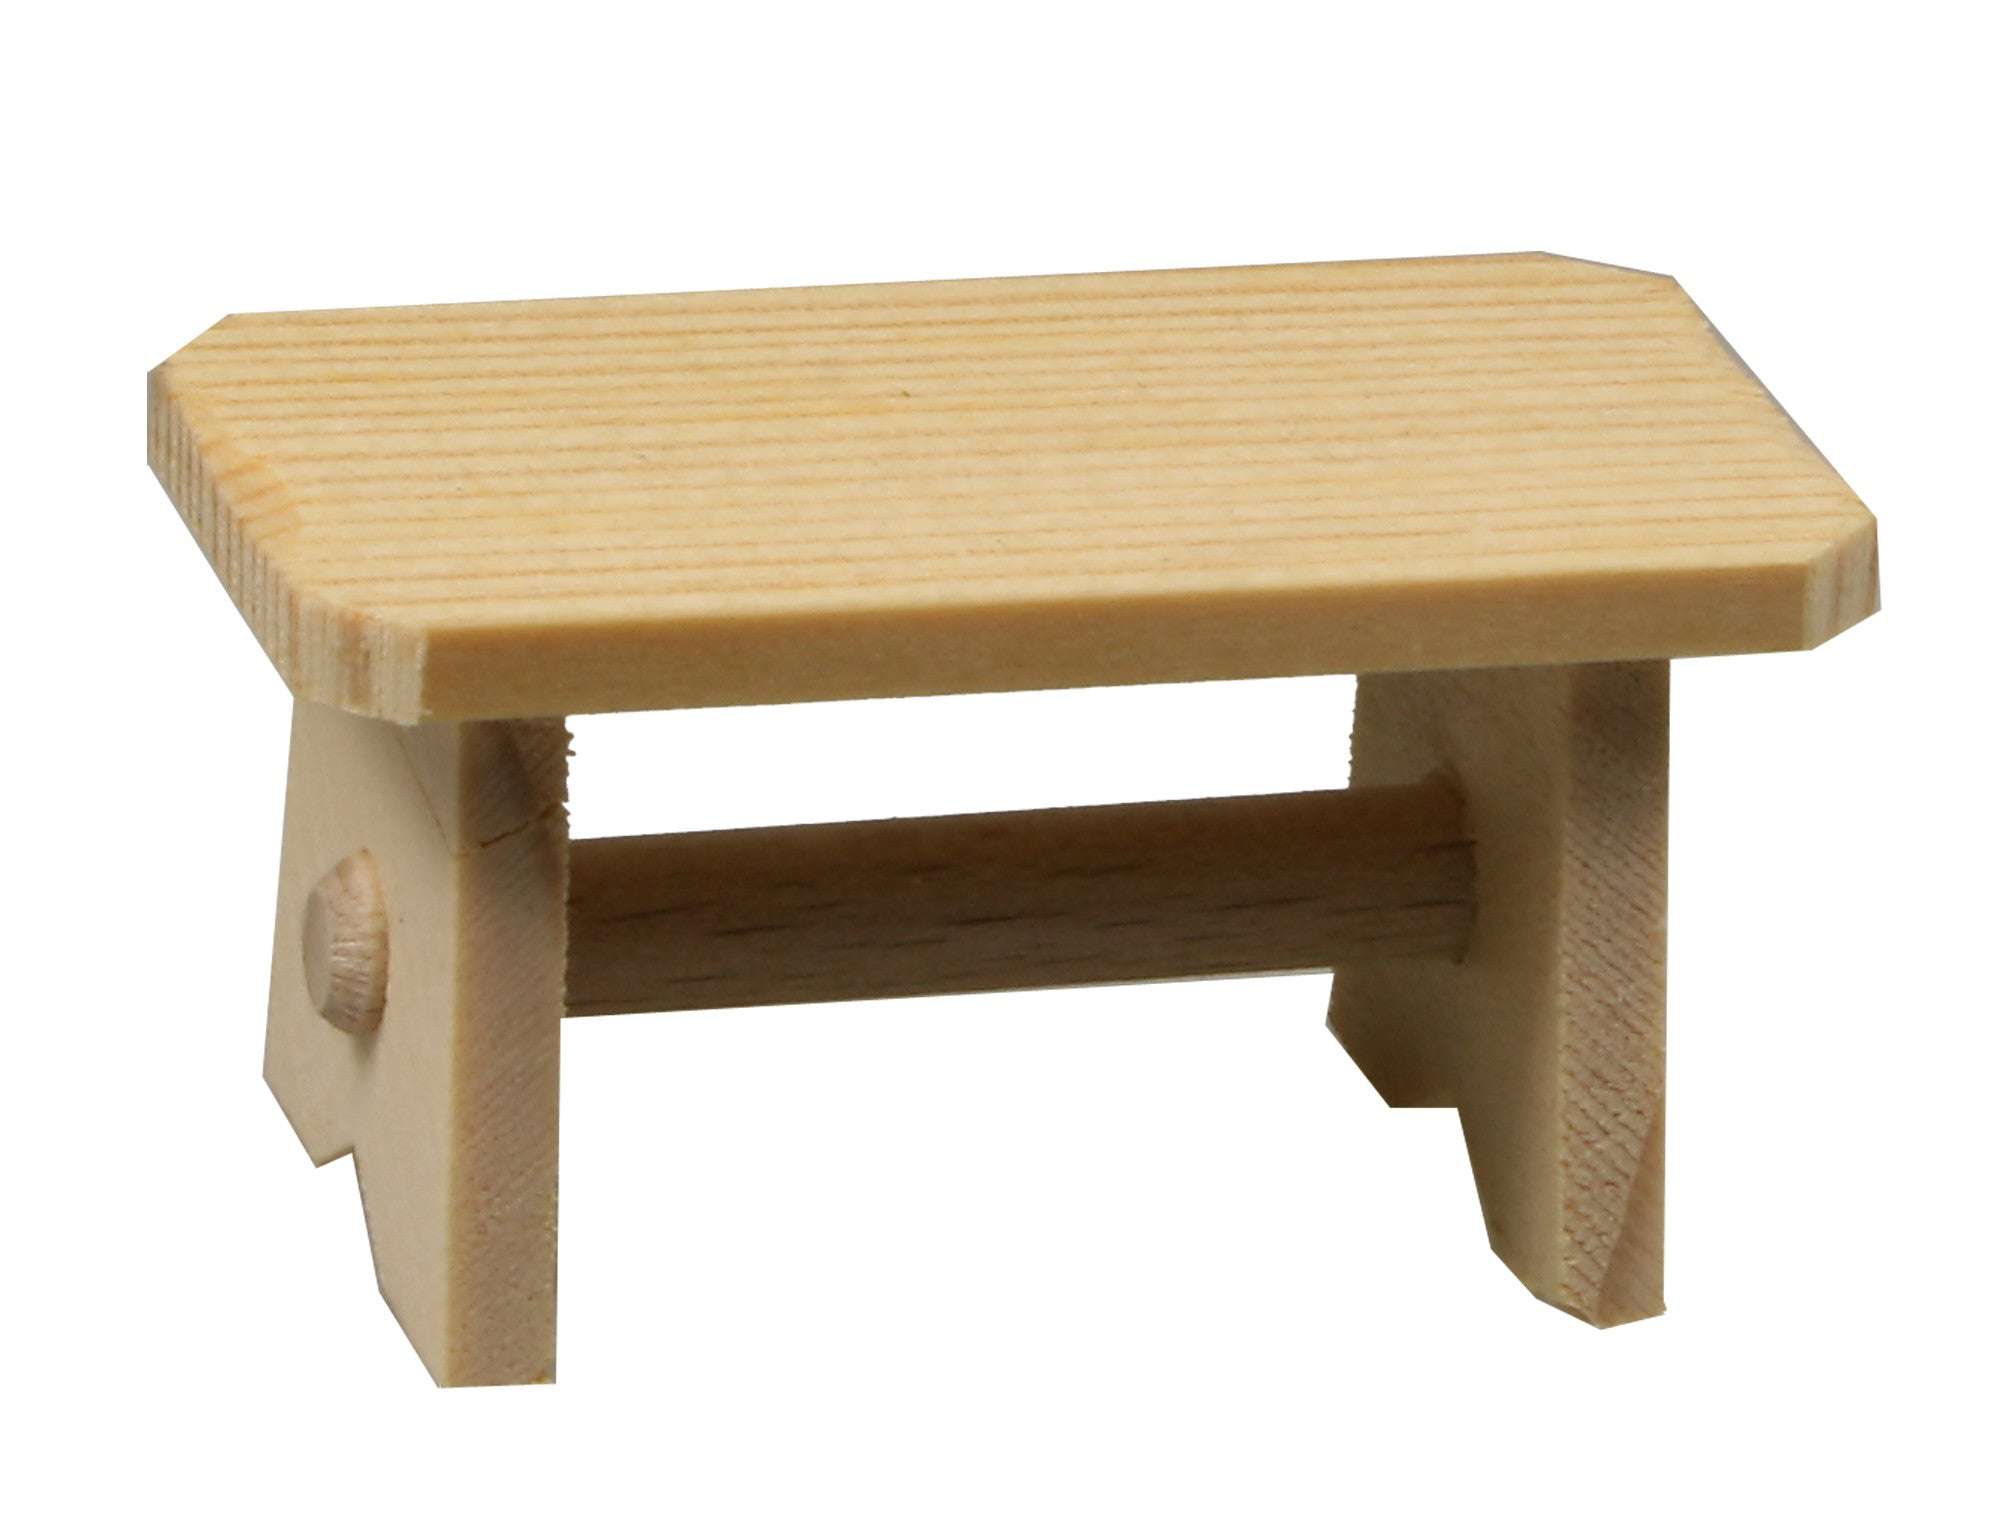 "Wooden Bench or Table - 1"" tall"